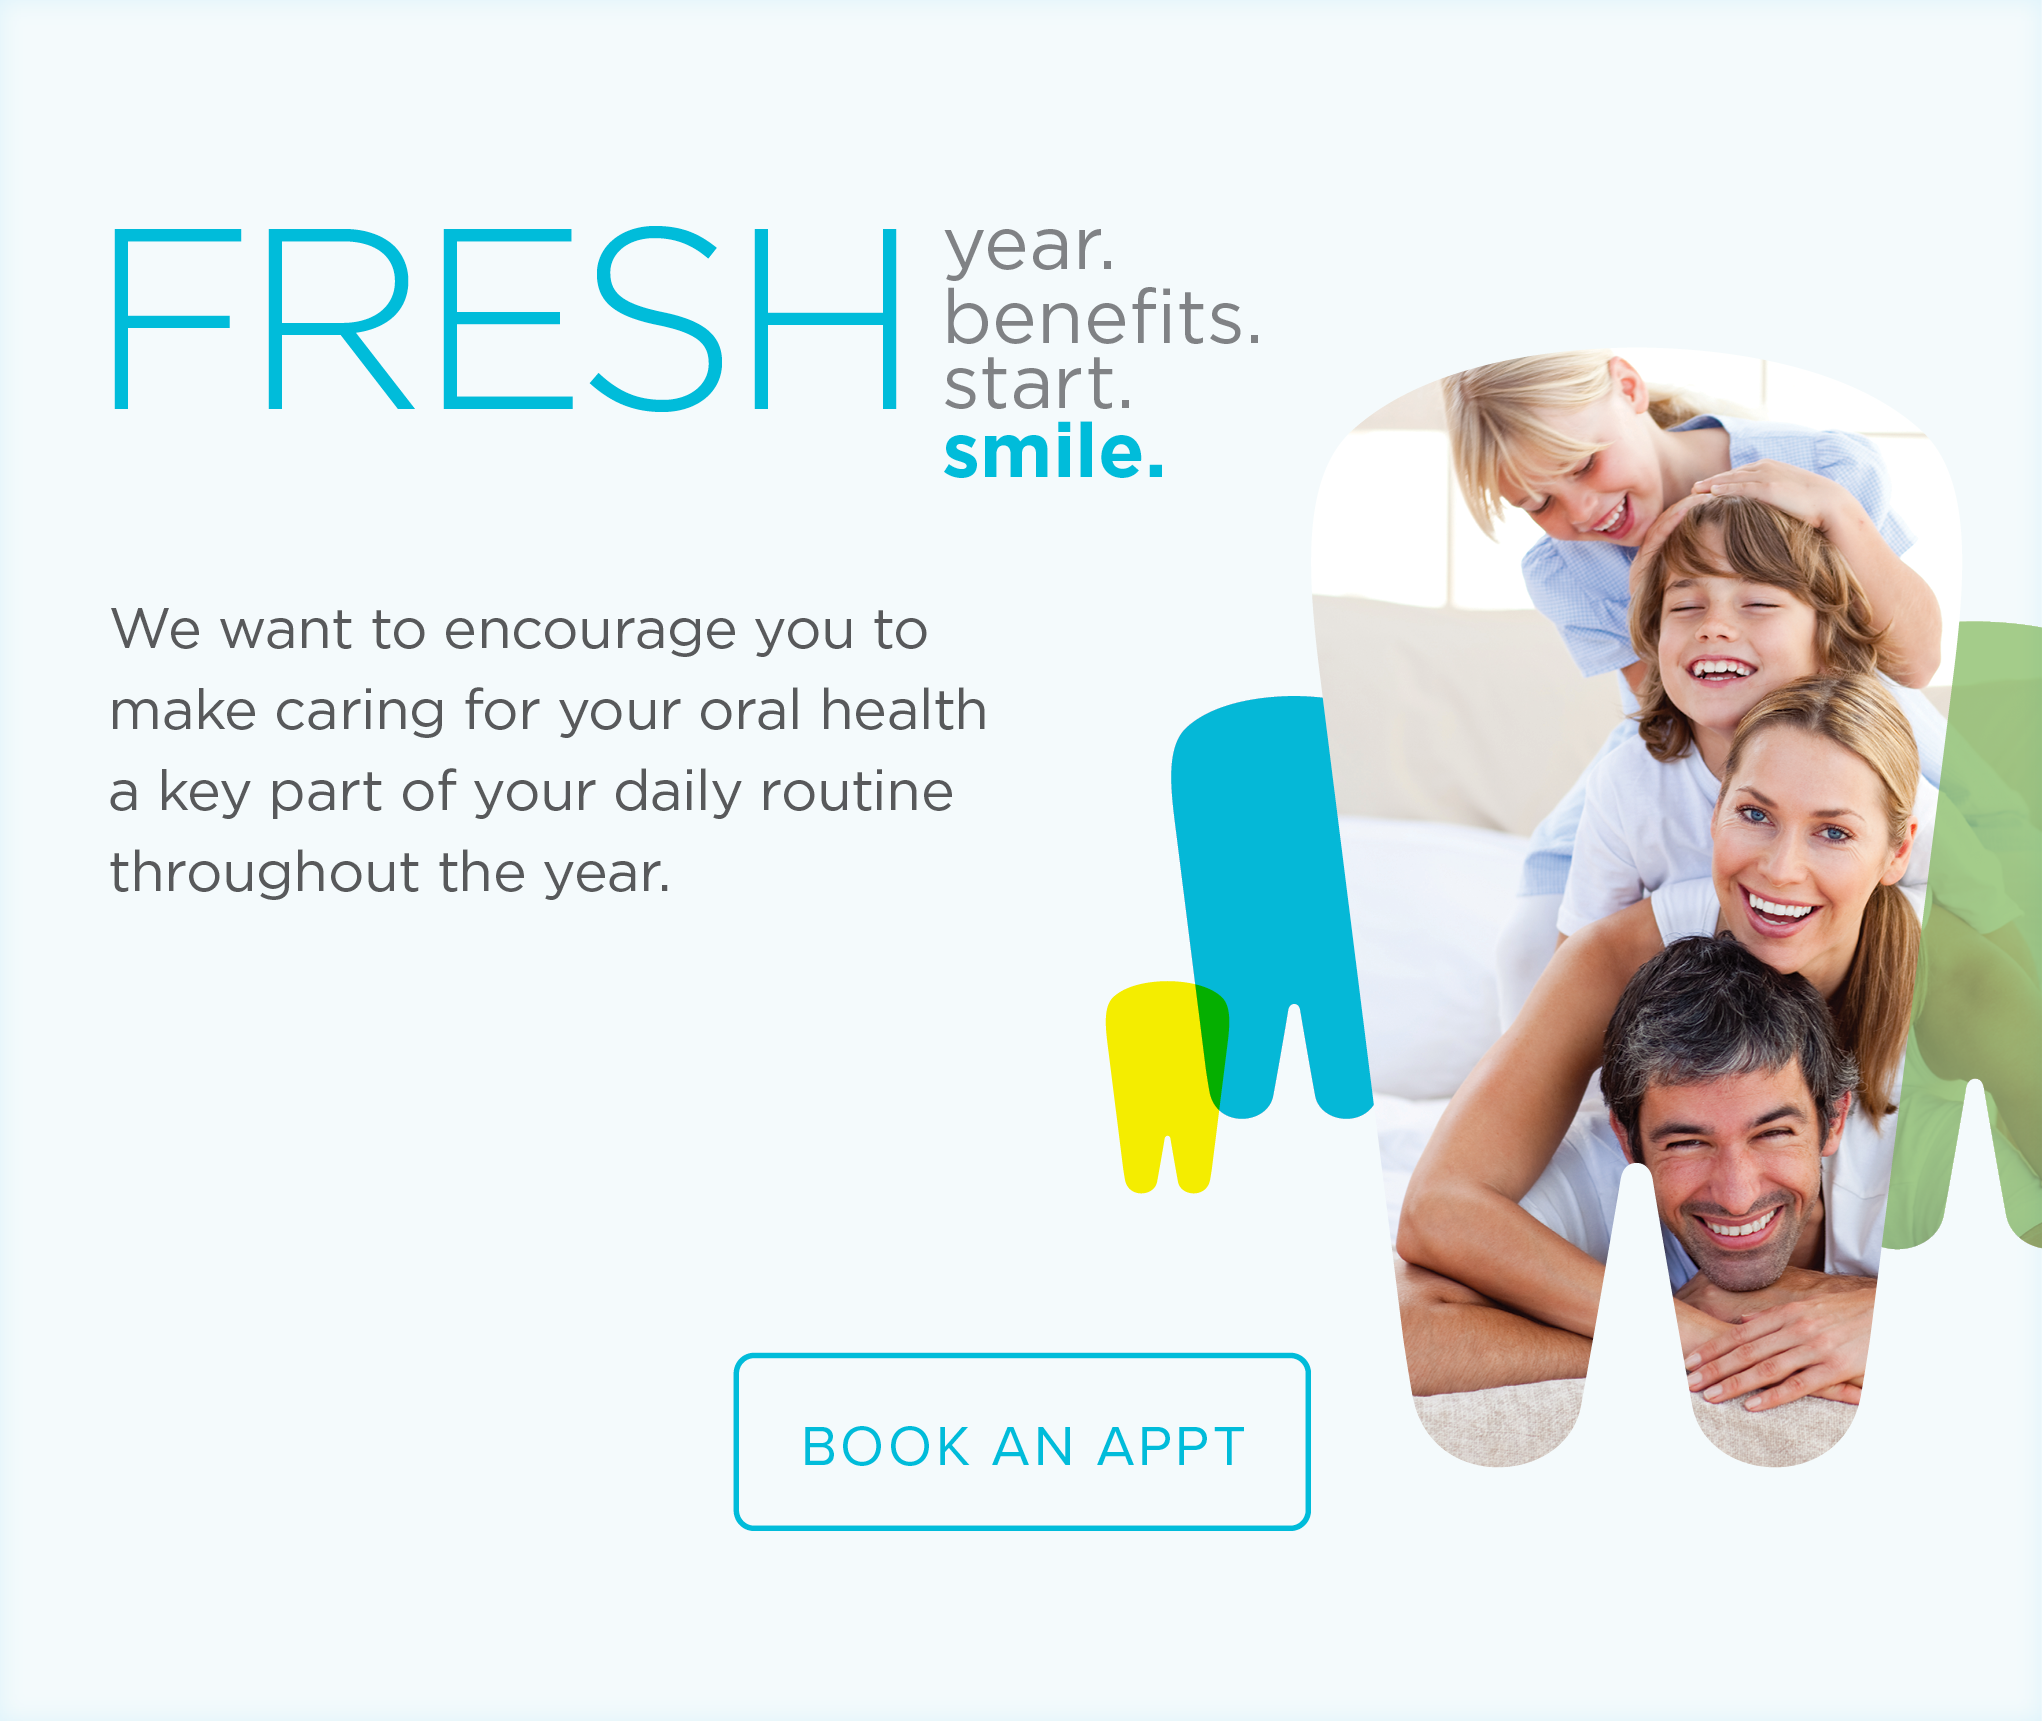 Castro Valley Smiles Dentistry - Make the Most of Your Benefits